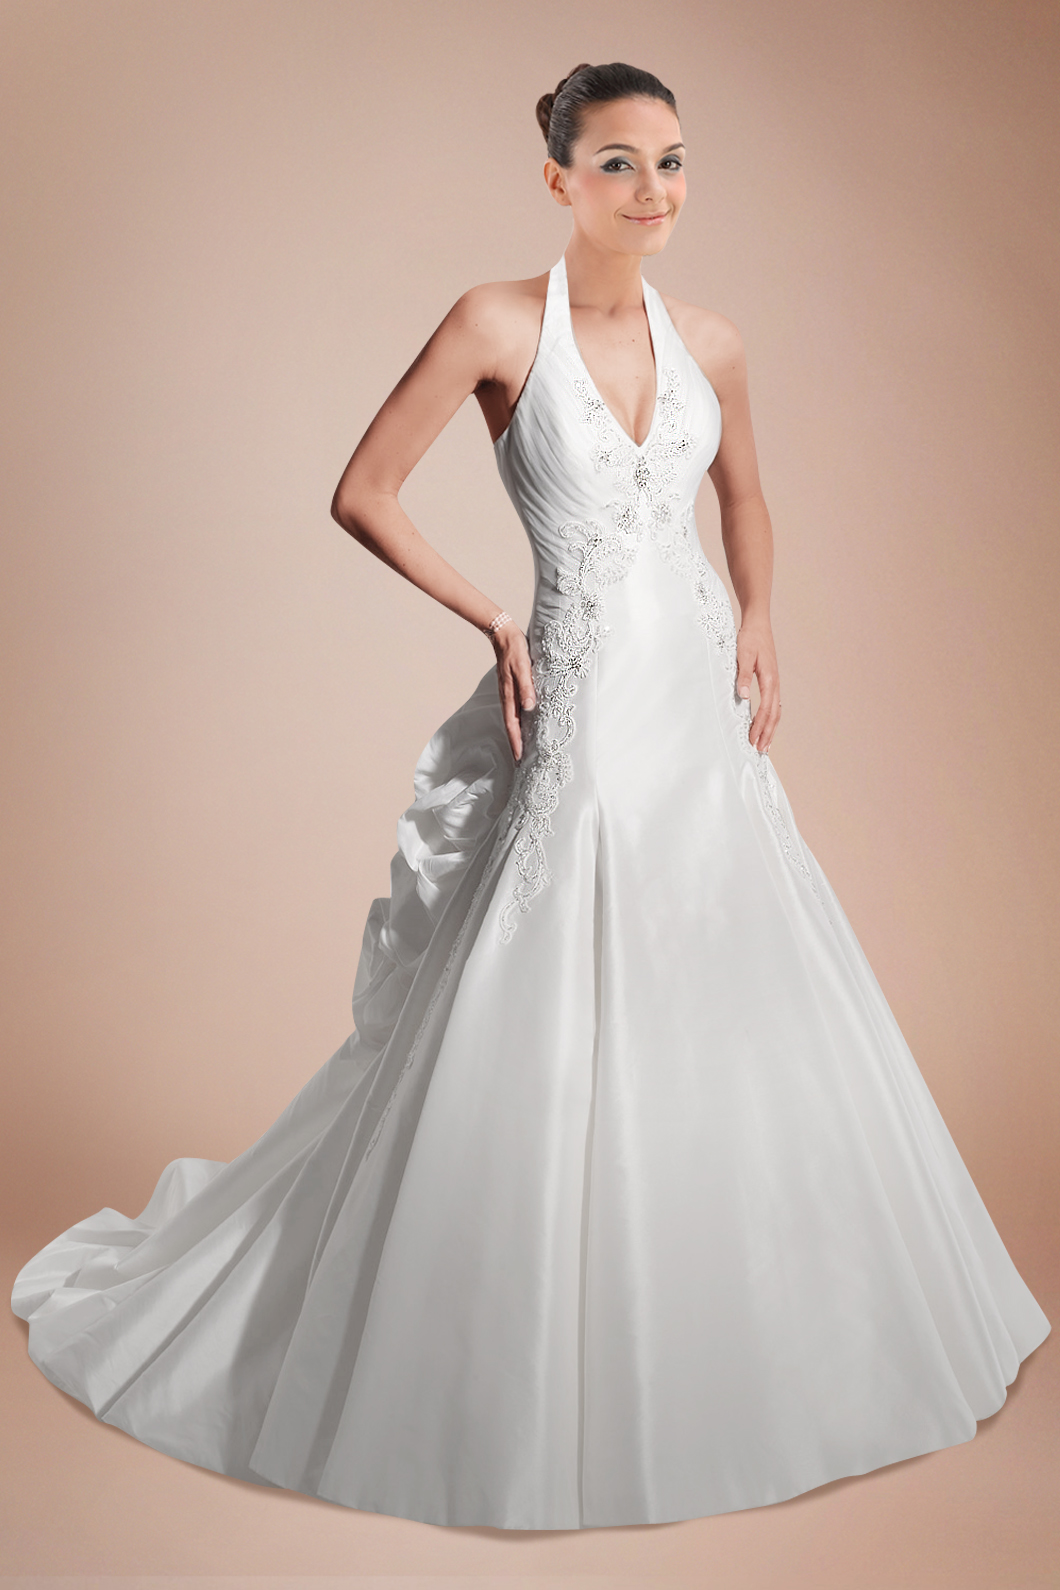 Coolingerie how to select wedding dresses for plump women for Wedding dresses for heavy ladies